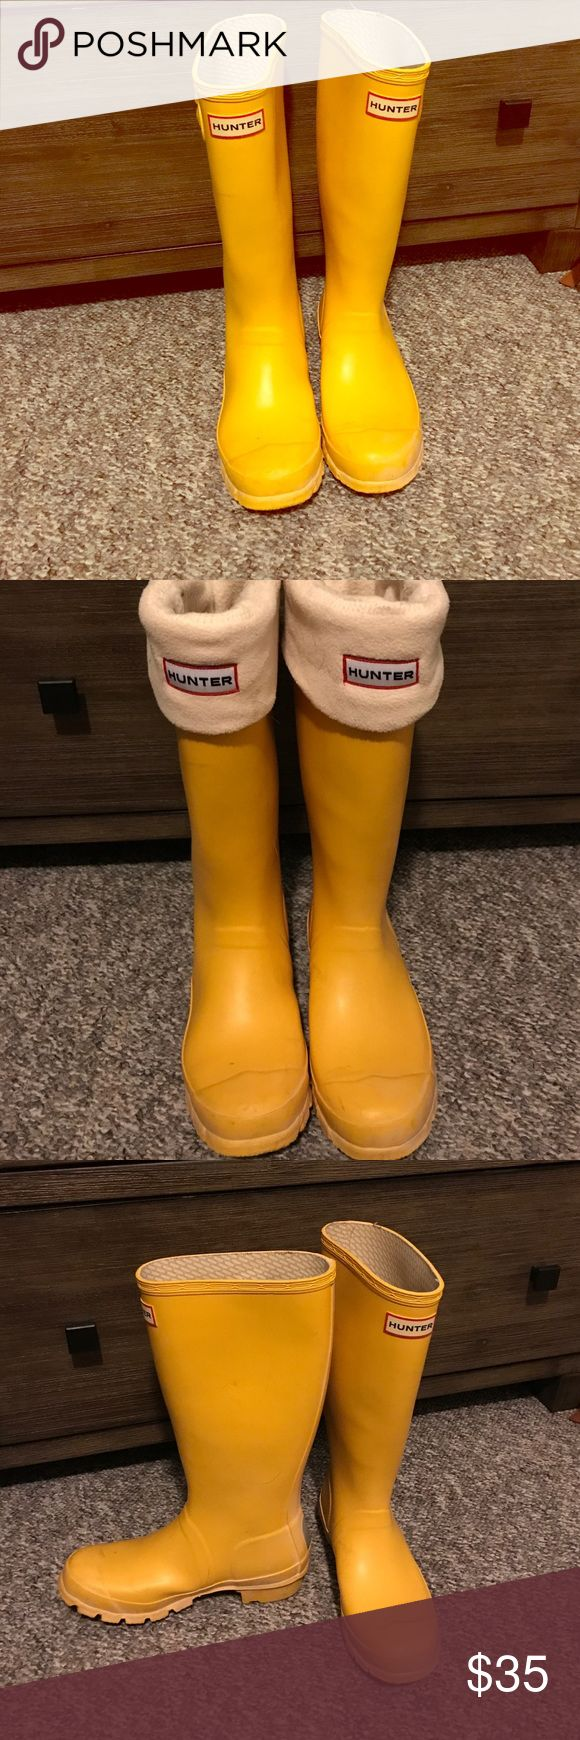 Hunter boots (yellow) with liner. US 4M/5F Like new Hunter Boots in classic yellow. Only worn once. Come with original fleece liners ($25 value). Perfect for rain, mud and snow! Kid size 5, but will fit if you wear women's 5-5.5 Hunter Boots Shoes Rain & Snow Boots